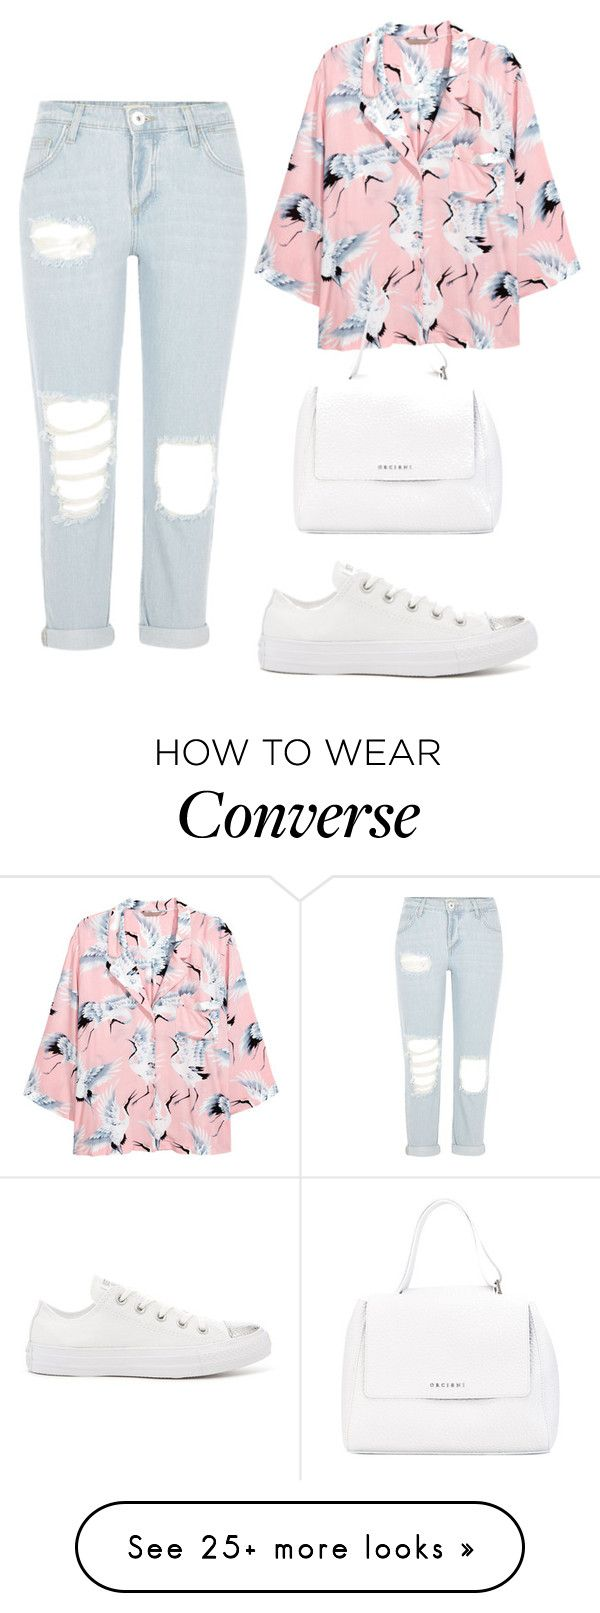 """Untitled #497"" by lolaalmalki on Polyvore featuring H&M, River Island, Converse and Orciani"